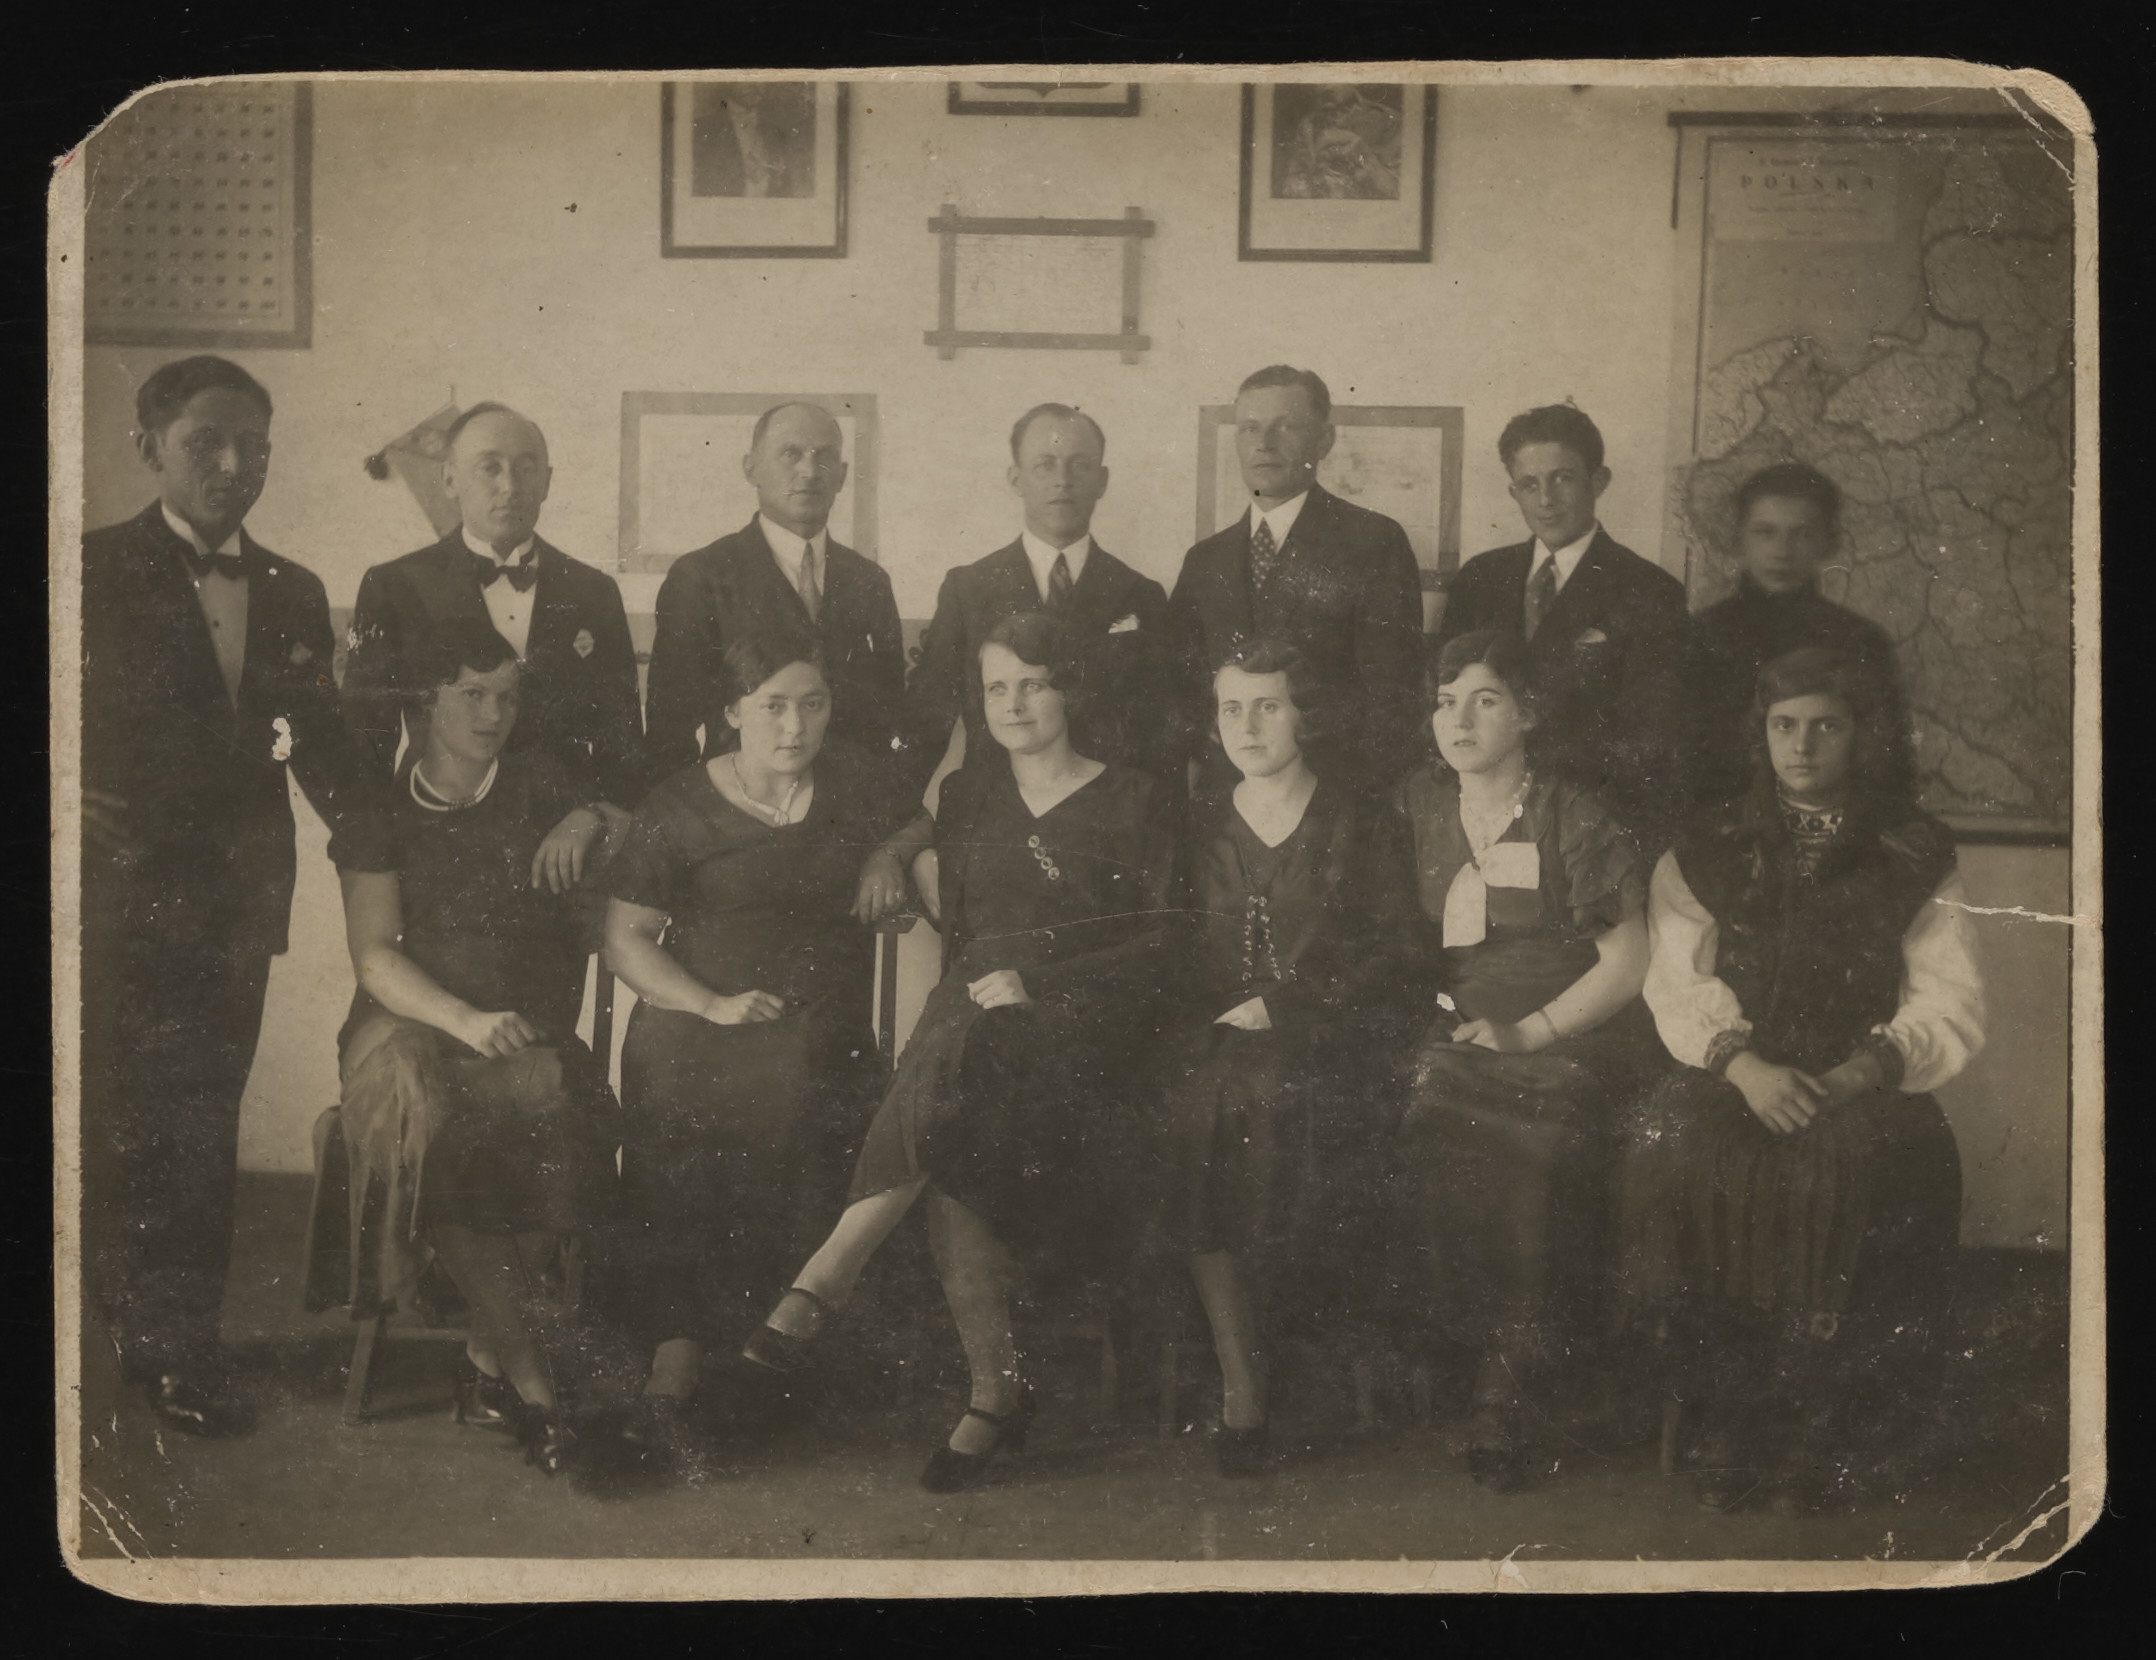 Group portrait of Polish Jews in a classroom decorated with maps and photographs.  Among those pictured are Mina Handel and her brother Hersch.  Mina is pictured seated second from the right and her brother is directly behind her.  Also pictured is Bernard Weinsieder (back row, fourth from left).